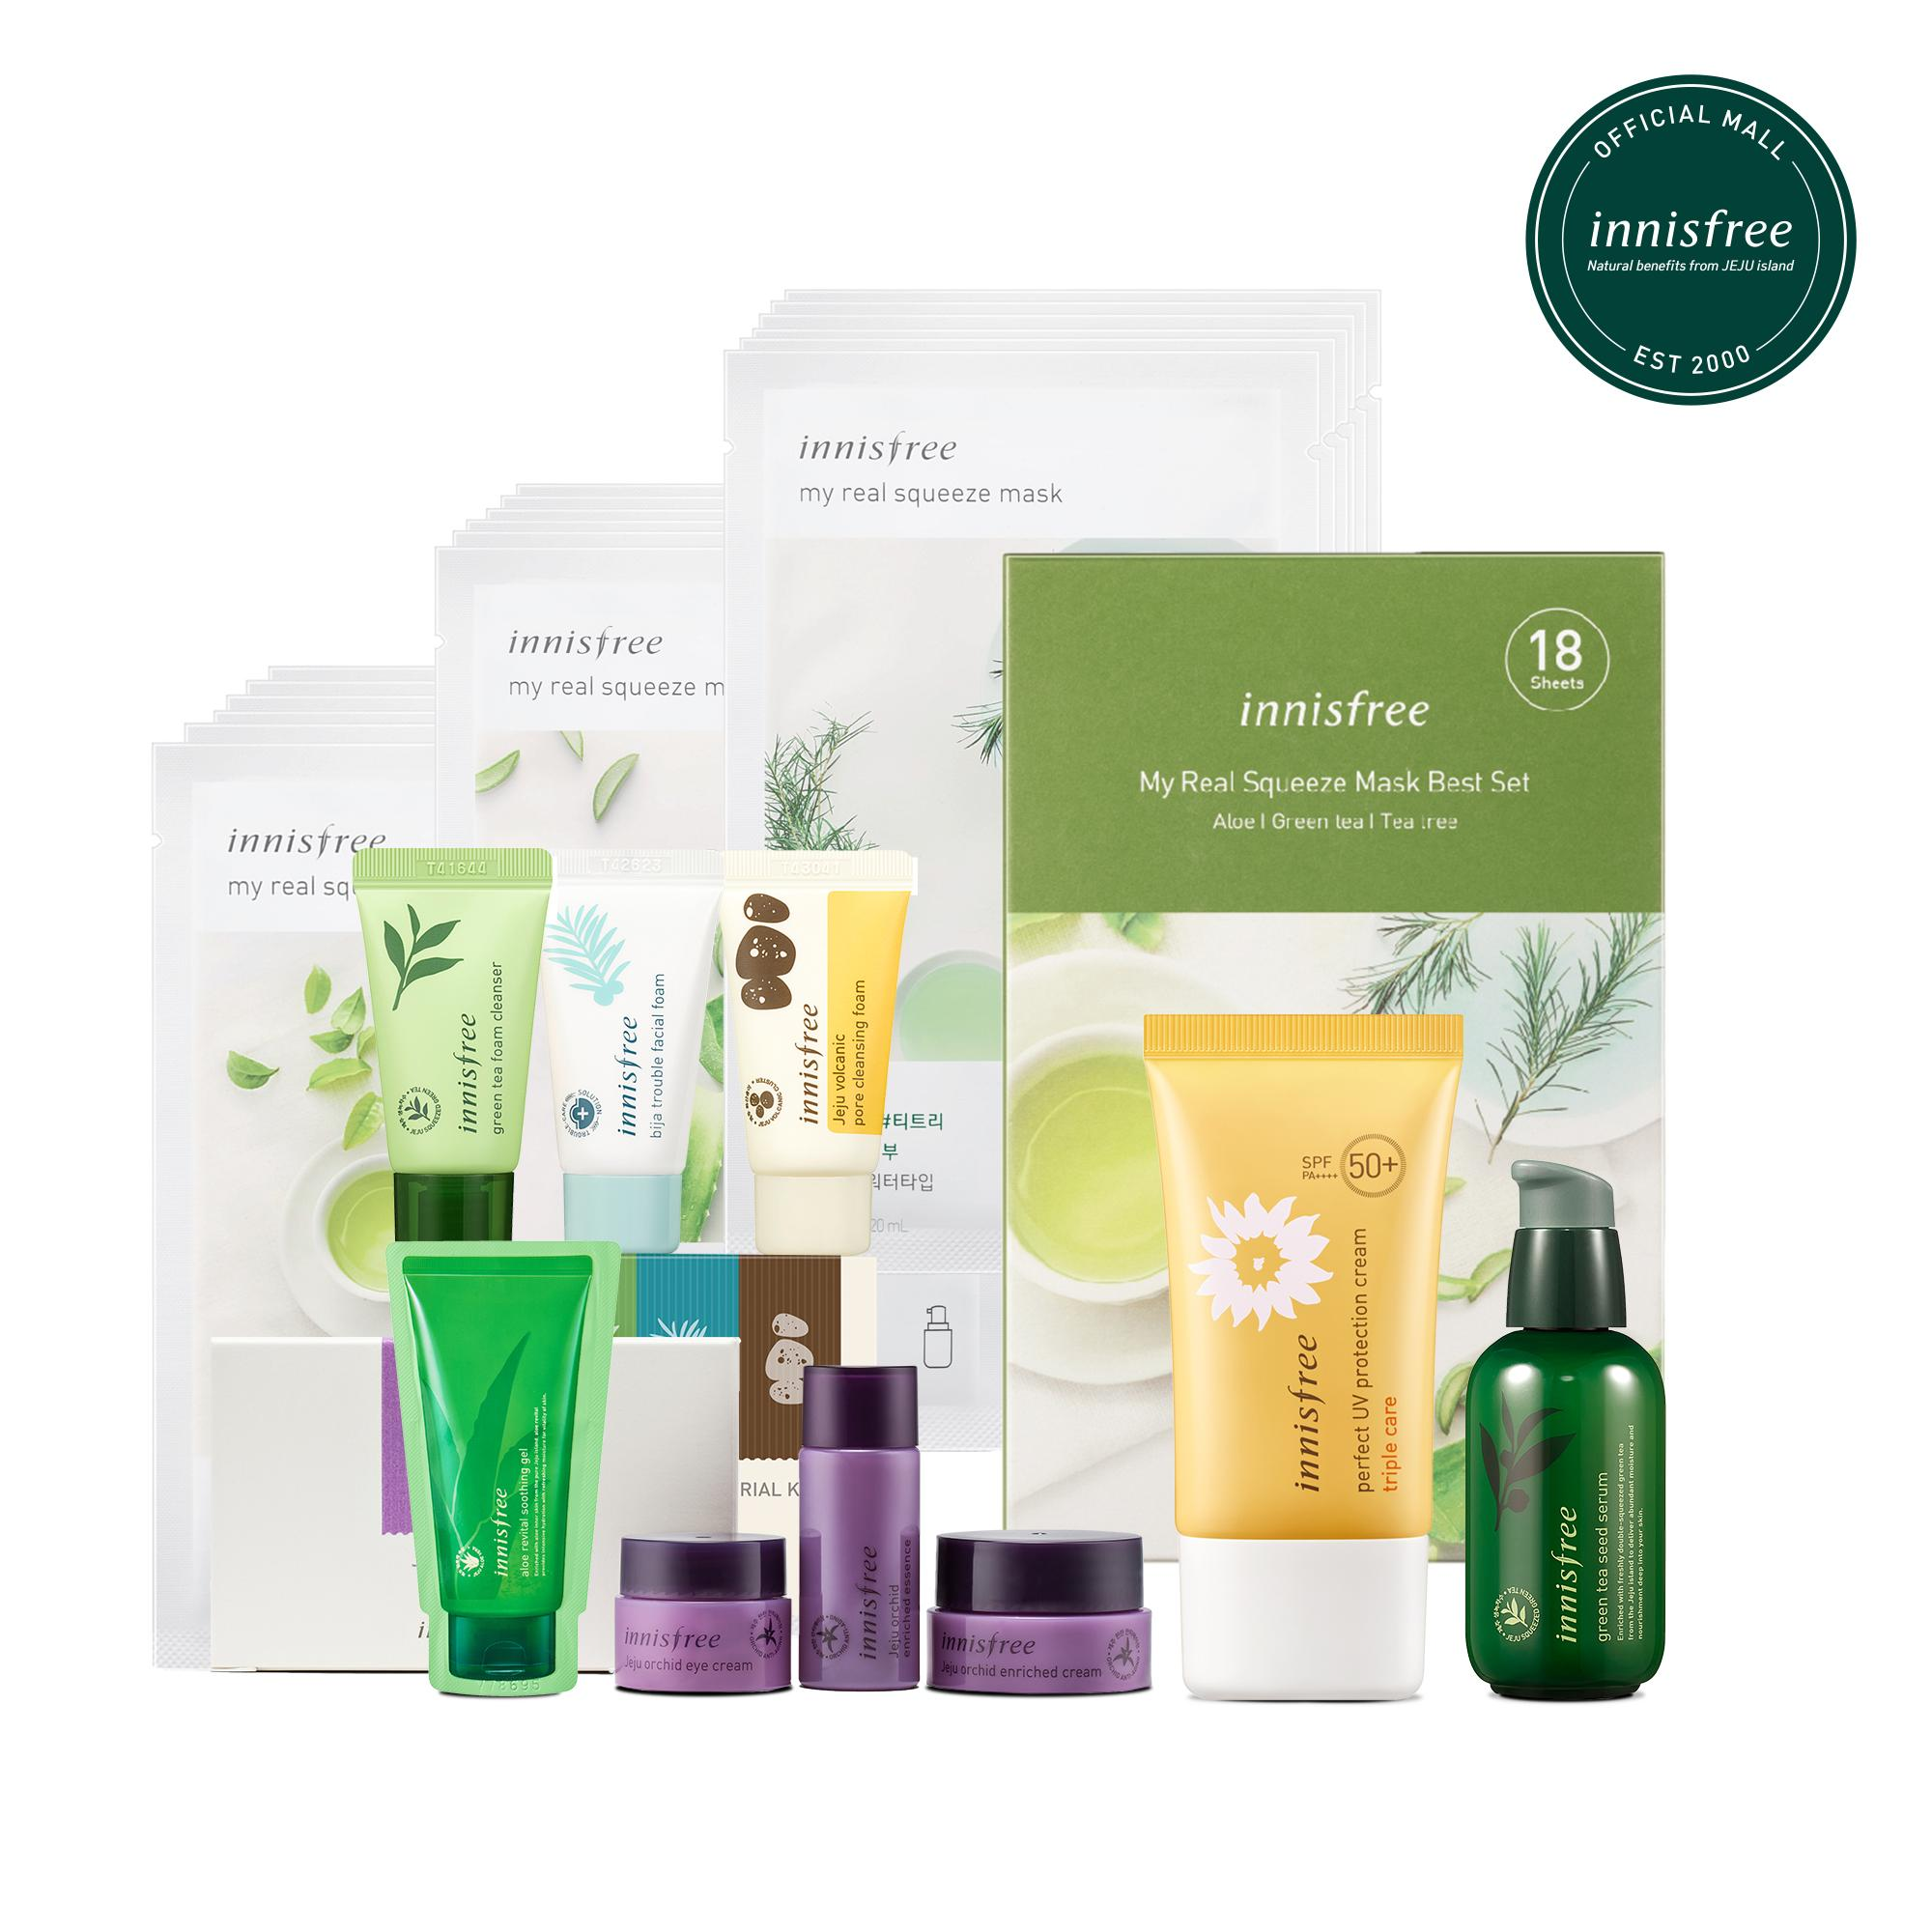 Bộ sản phẩm chăm sóc dưỡng ẩm chống nắng toàn diện Innisfree Green Tea Seed Serum 80ml + Innisfree My Real Squeeze Mask Set 20ml*18 + Innisfree Perfect UV Protection Cream Triple Care 50ml SPF50 PA++++ tốt nhất